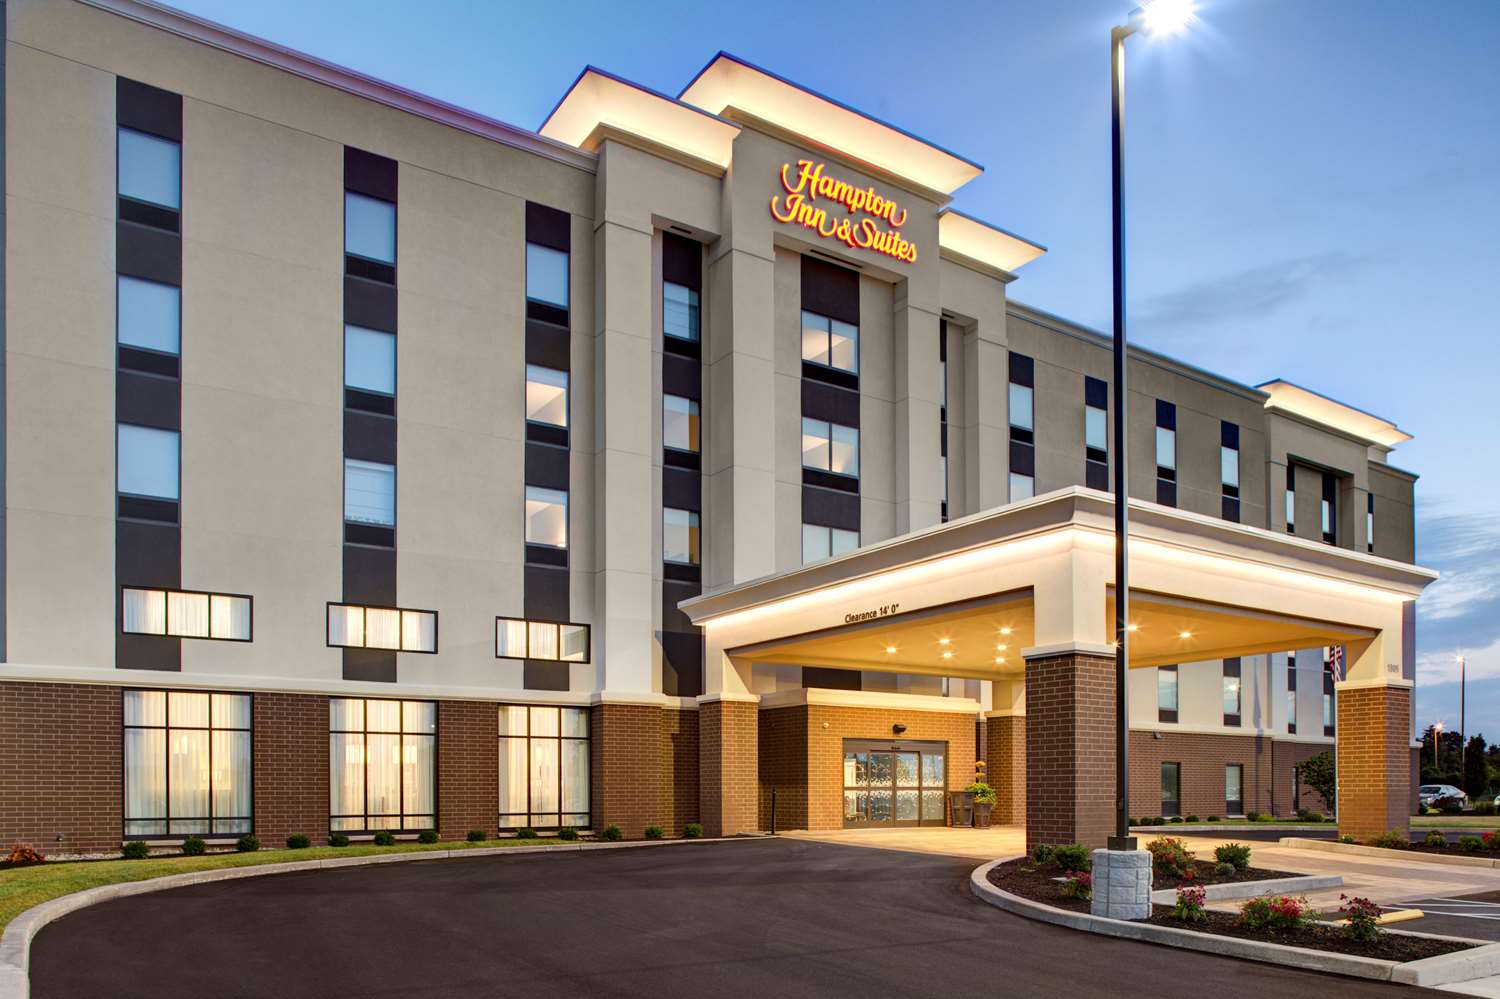 Ramada Inn North Syracuse